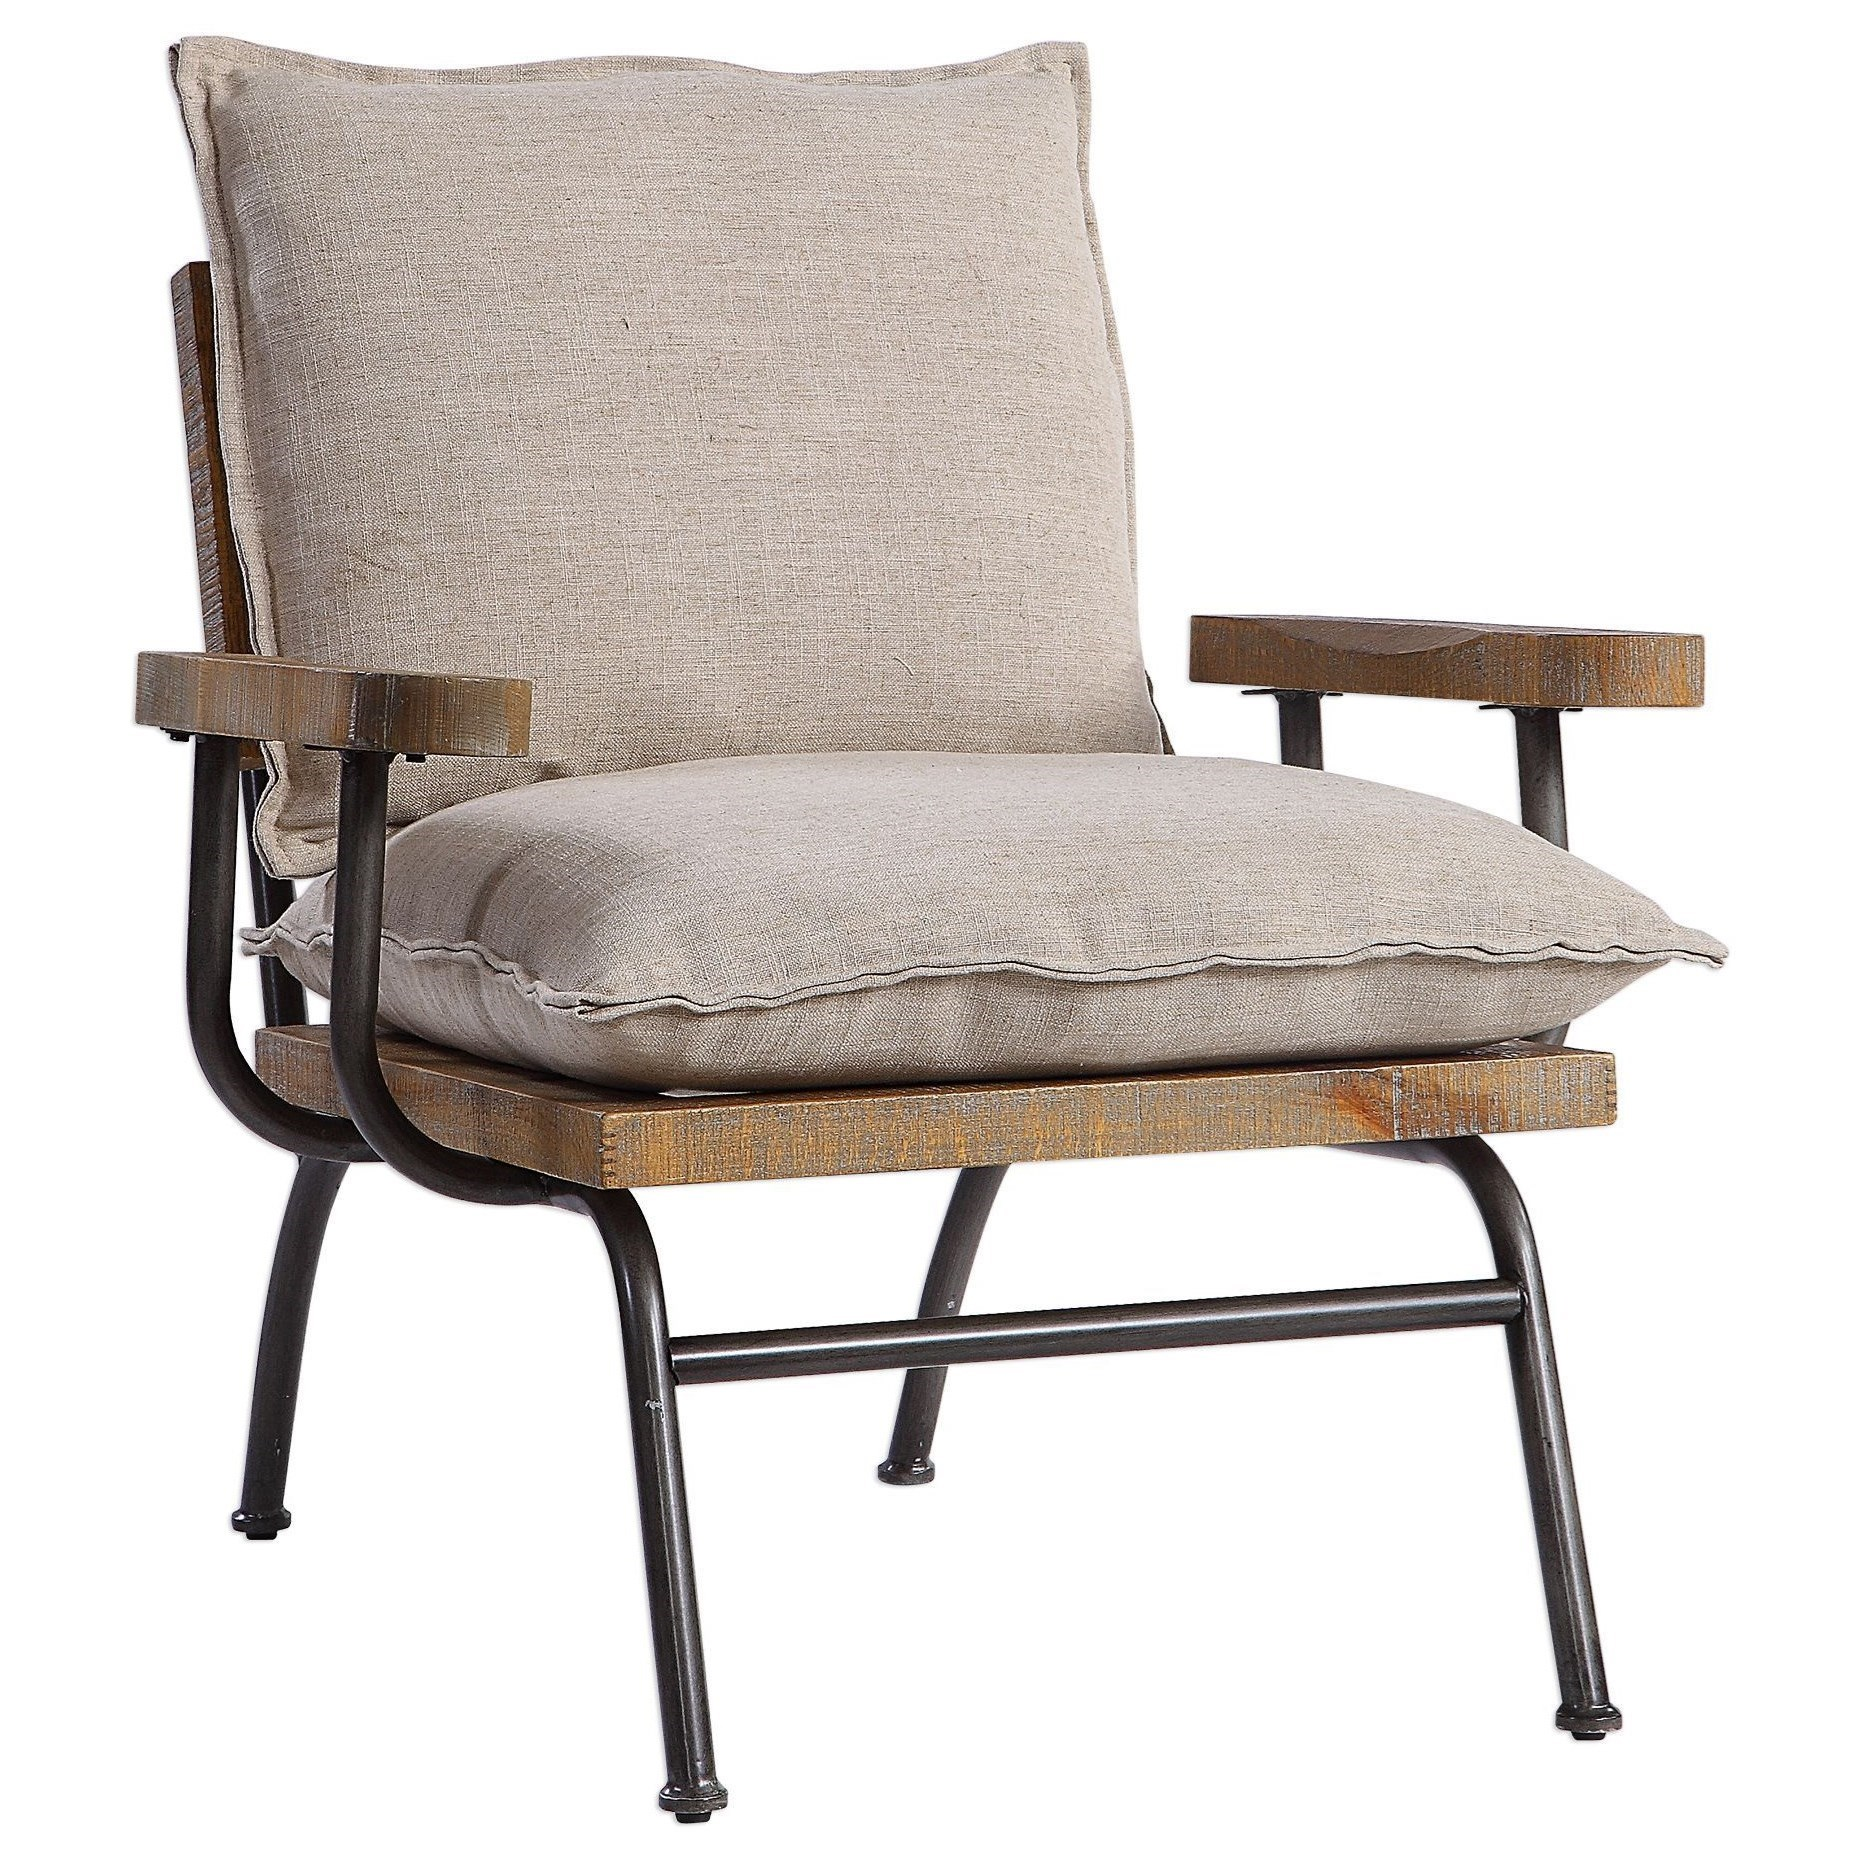 Accent Furniture - Accent Chairs Declan Industrial Accent Chair by Uttermost at Upper Room Home Furnishings